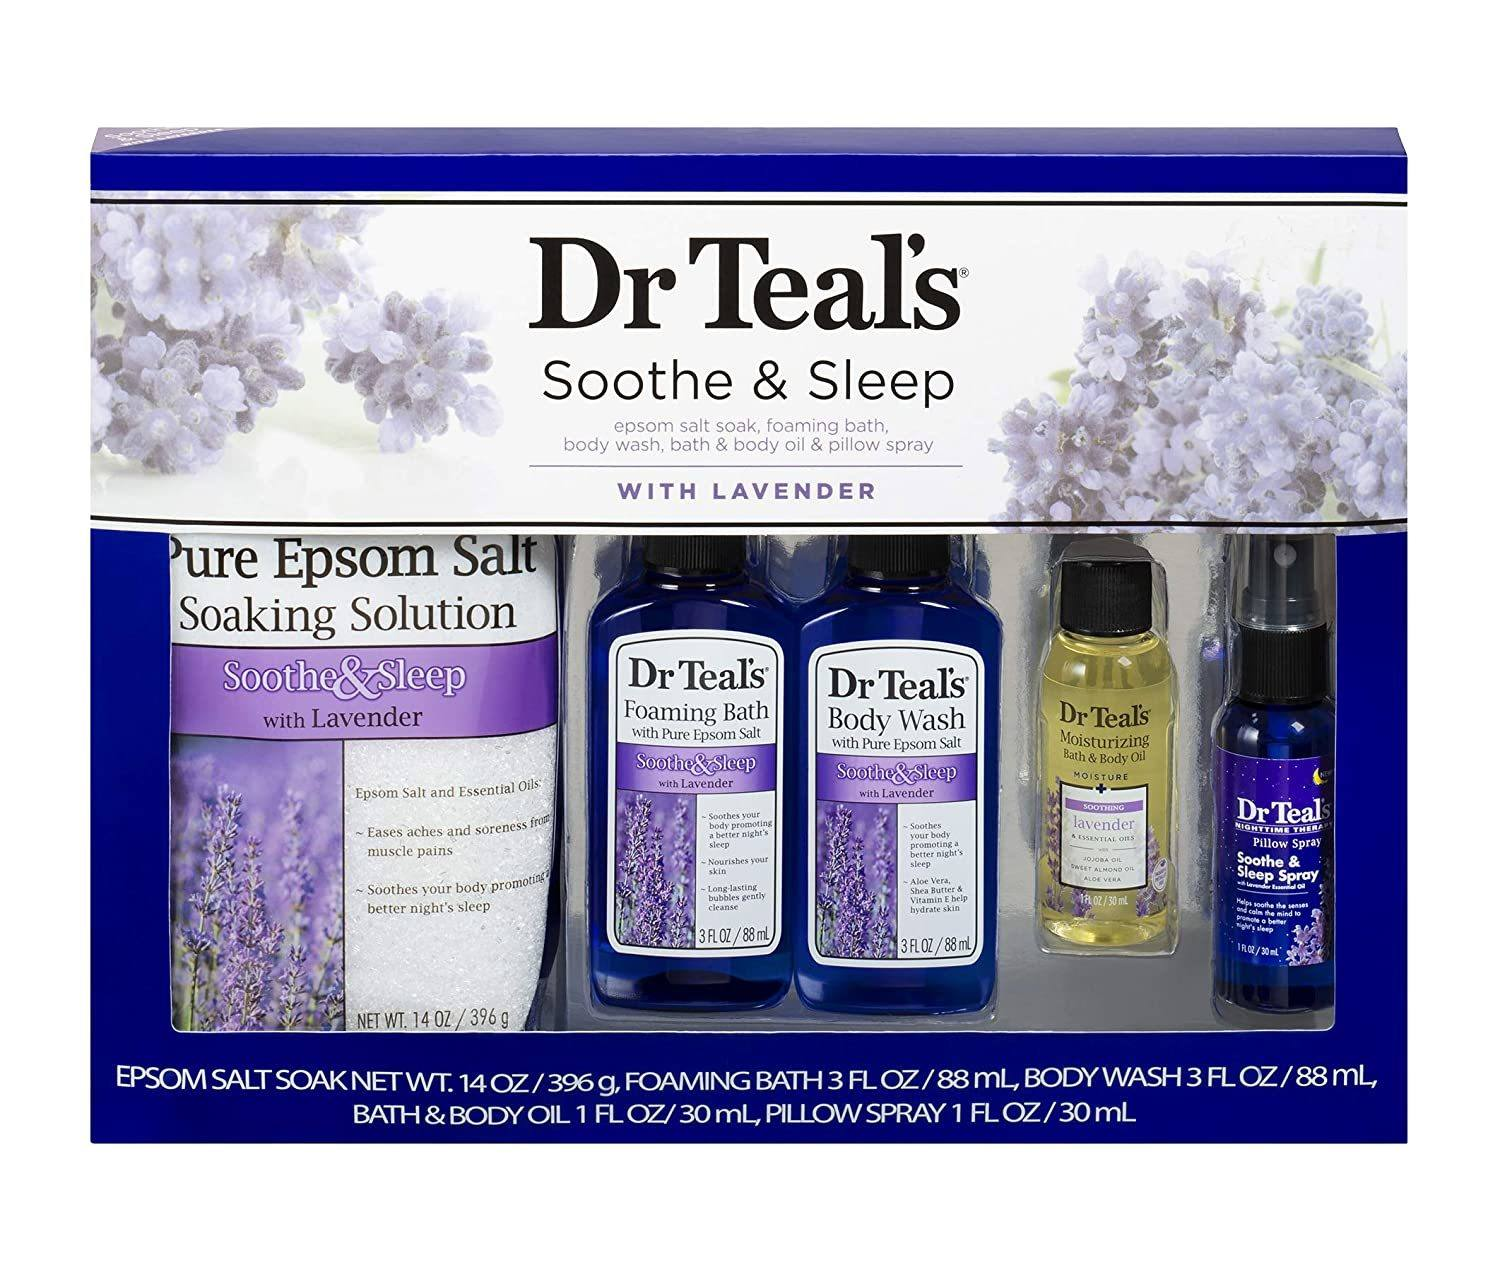 Dr Teals Soothe and Sleep bath set